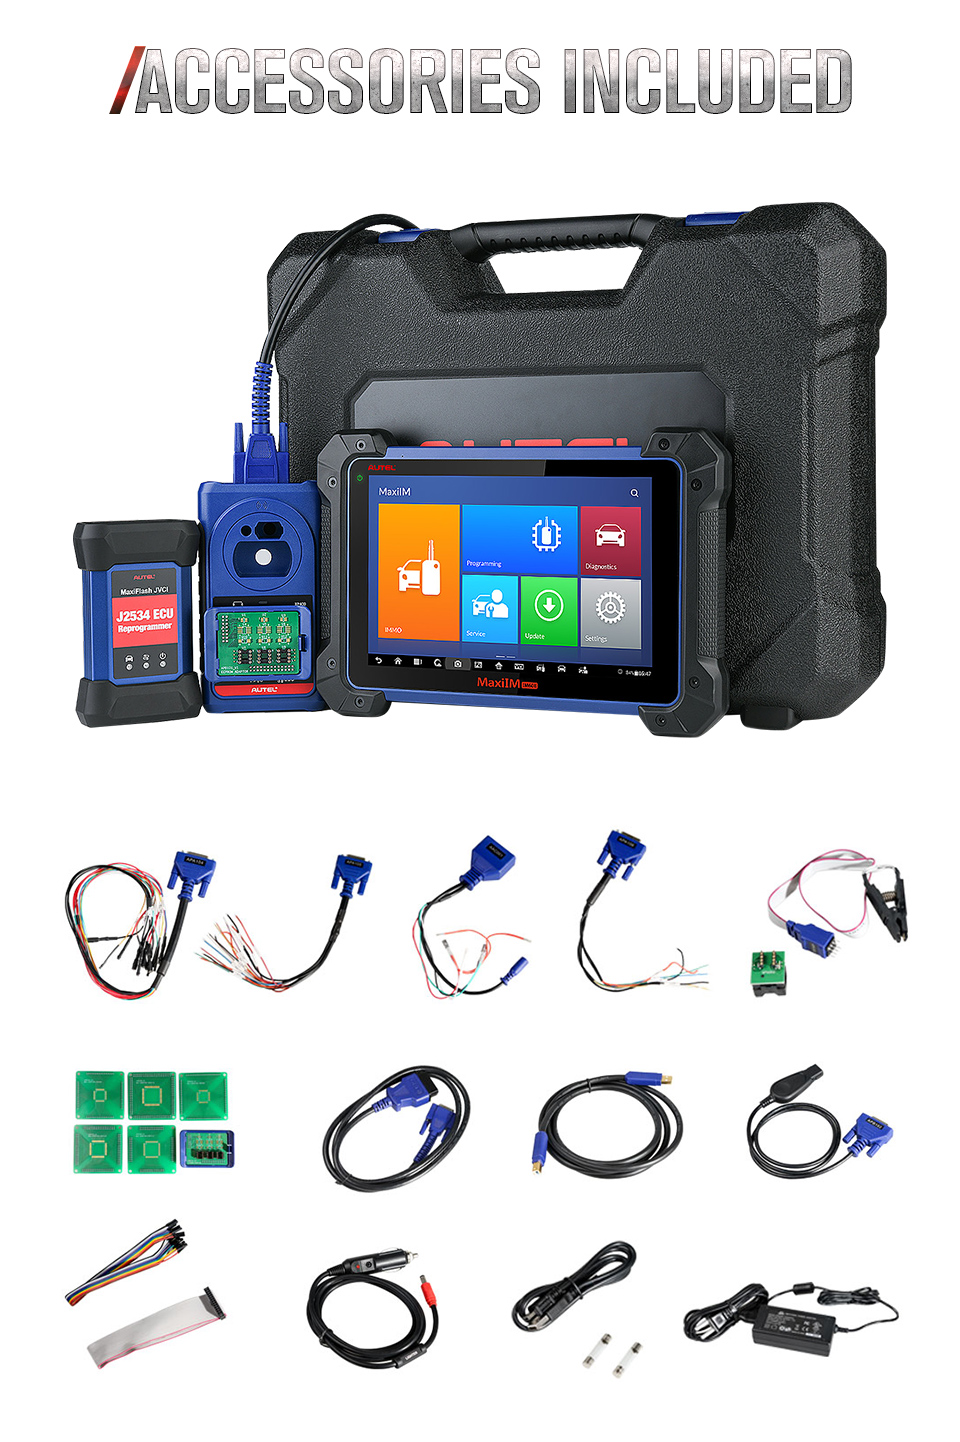 Advance Autel IM608 Universal Auto Diagnostic Tool Key Programming Machine Scanner for All Cars all Keys Lost